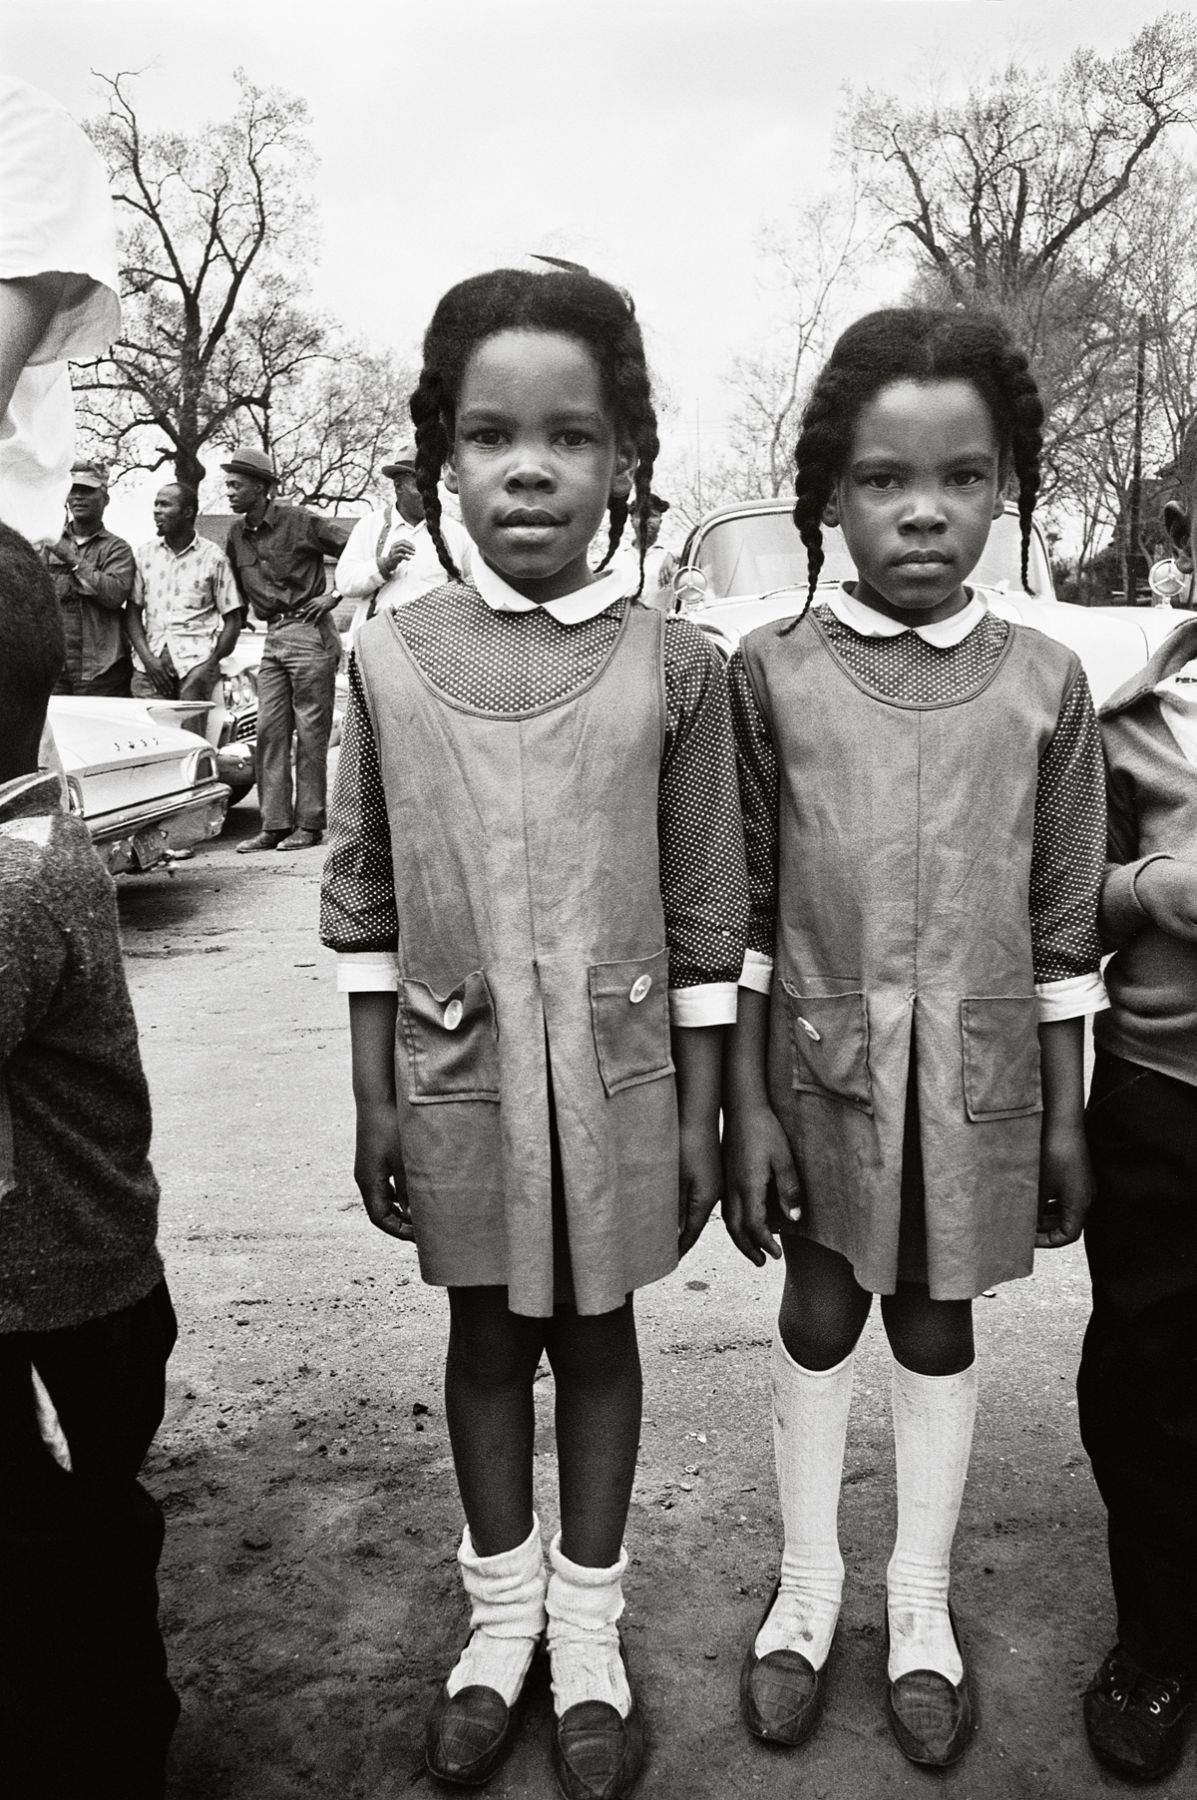 Two Girls Watching the March, Selma, 1965, 20 x 16Inches, Silver Gelatin Photograph, Edition of 25